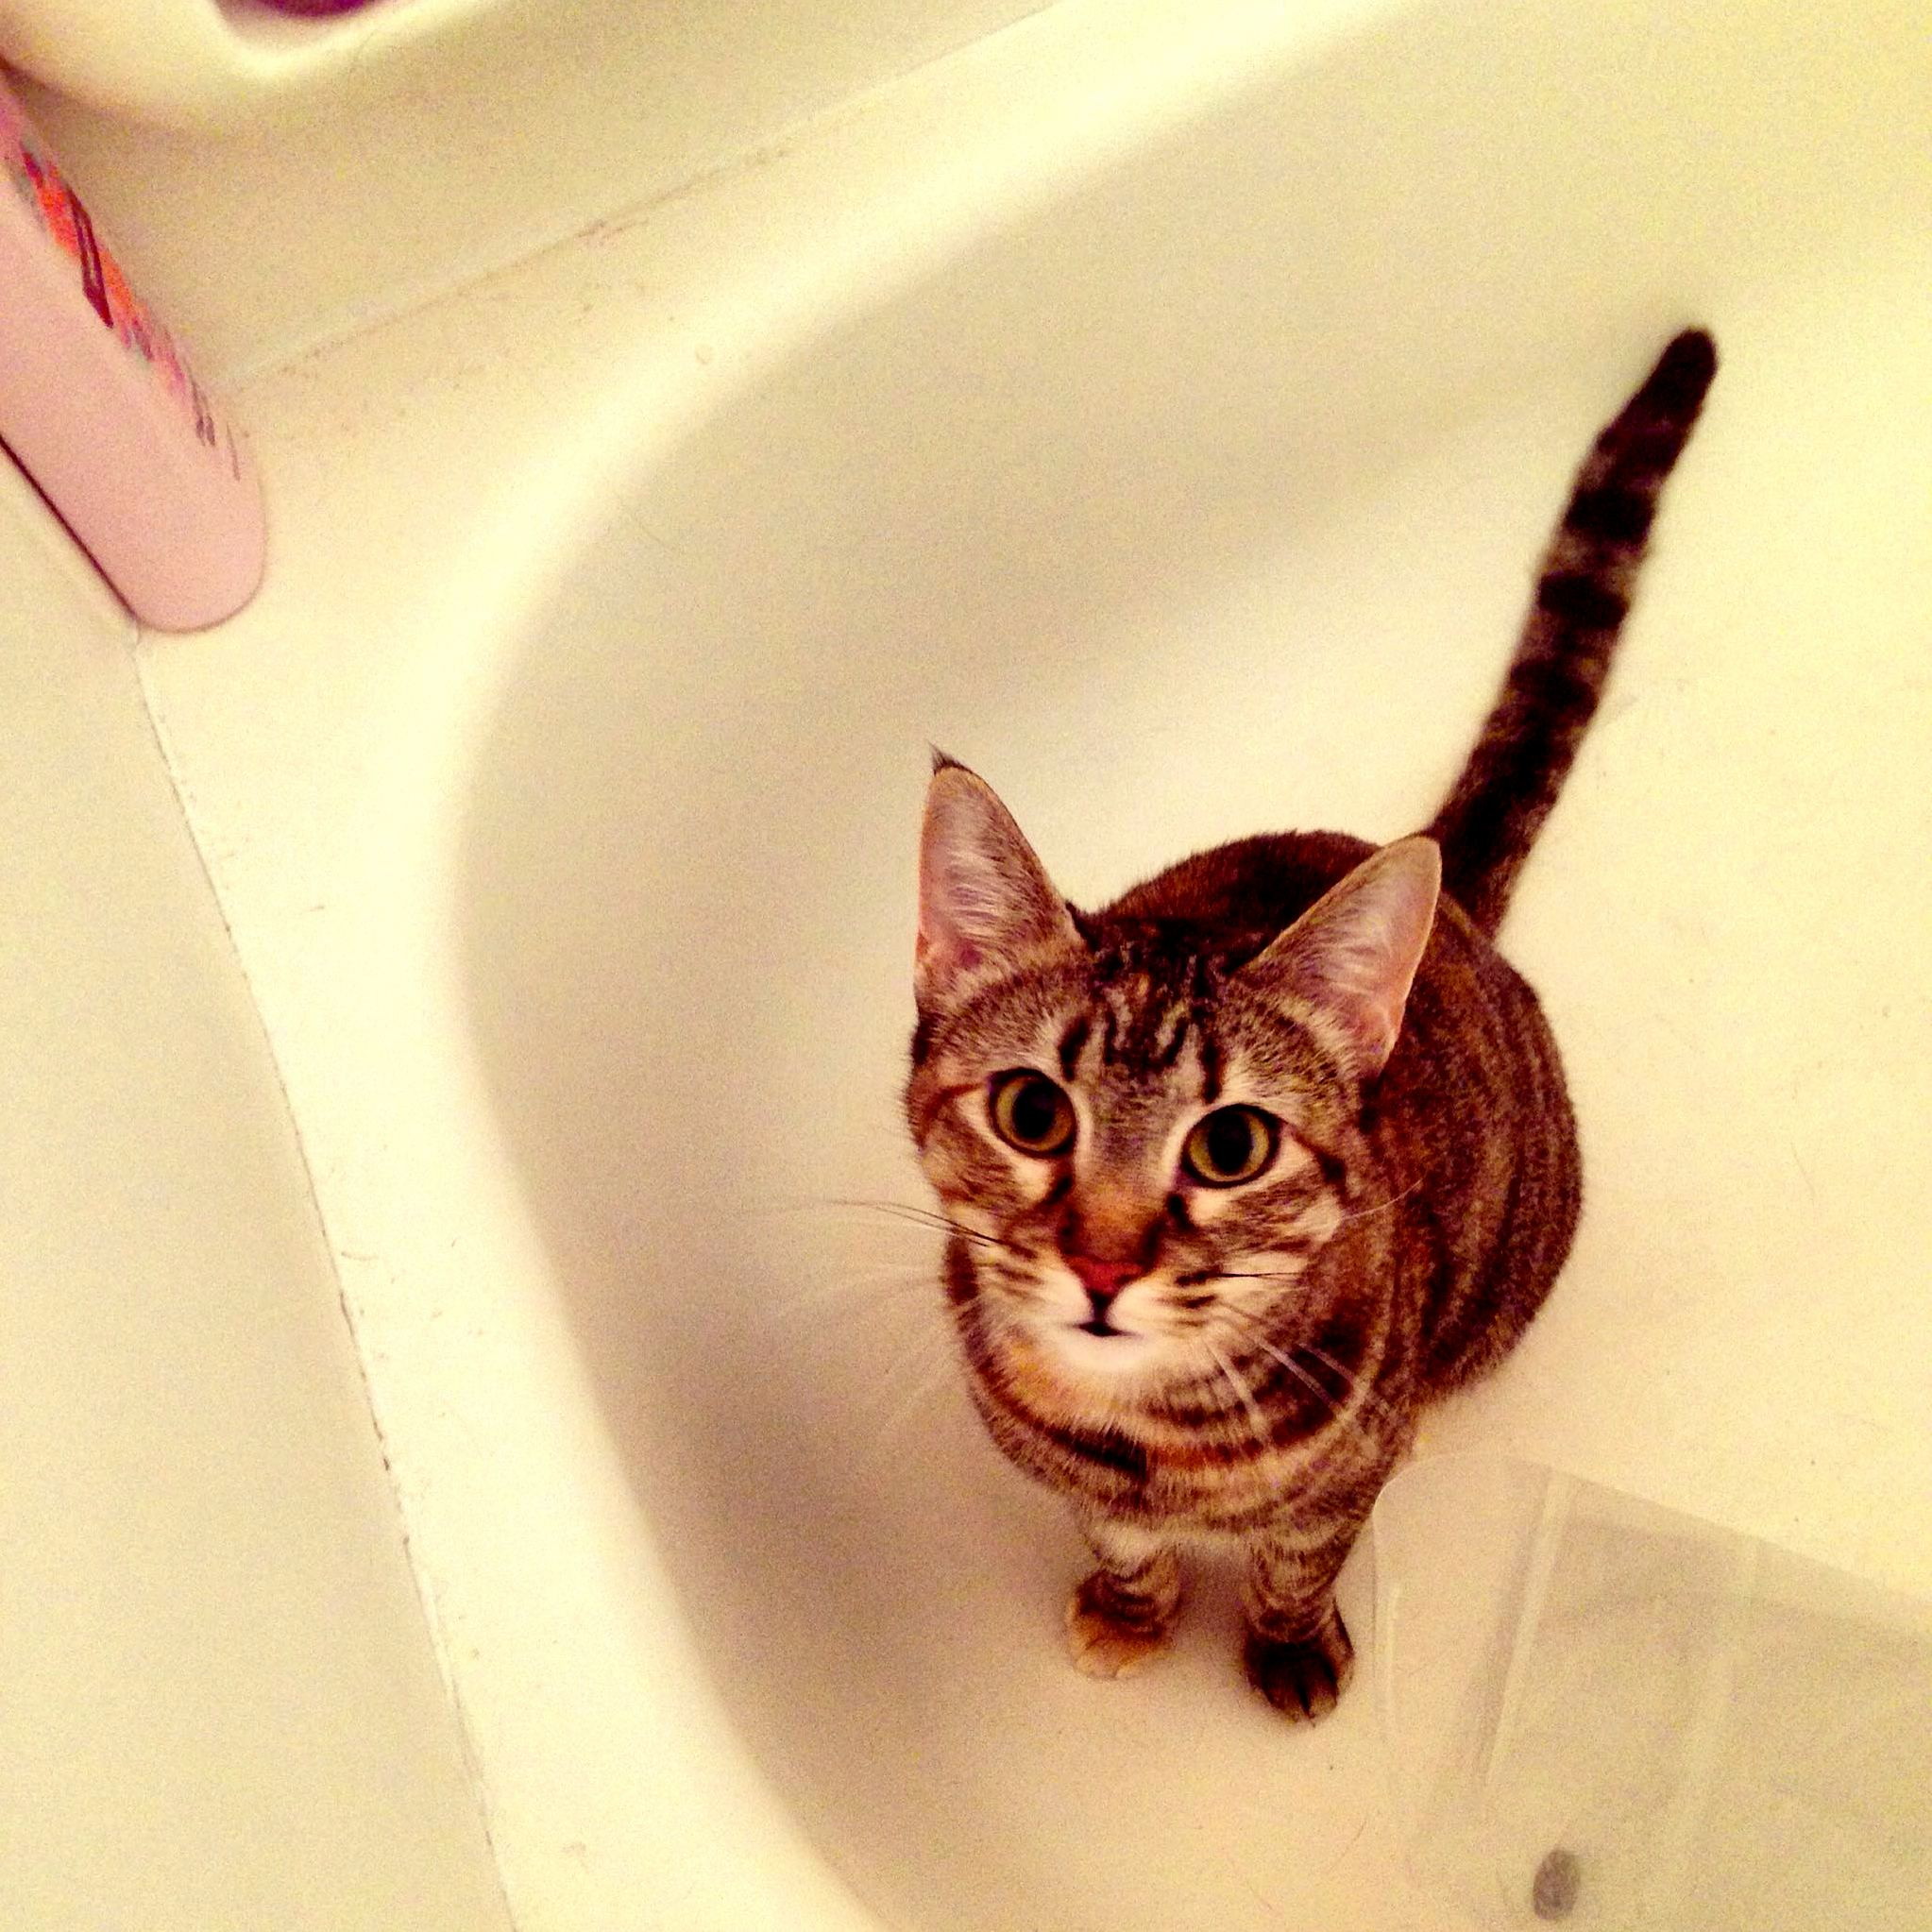 She loves playing in the tub.